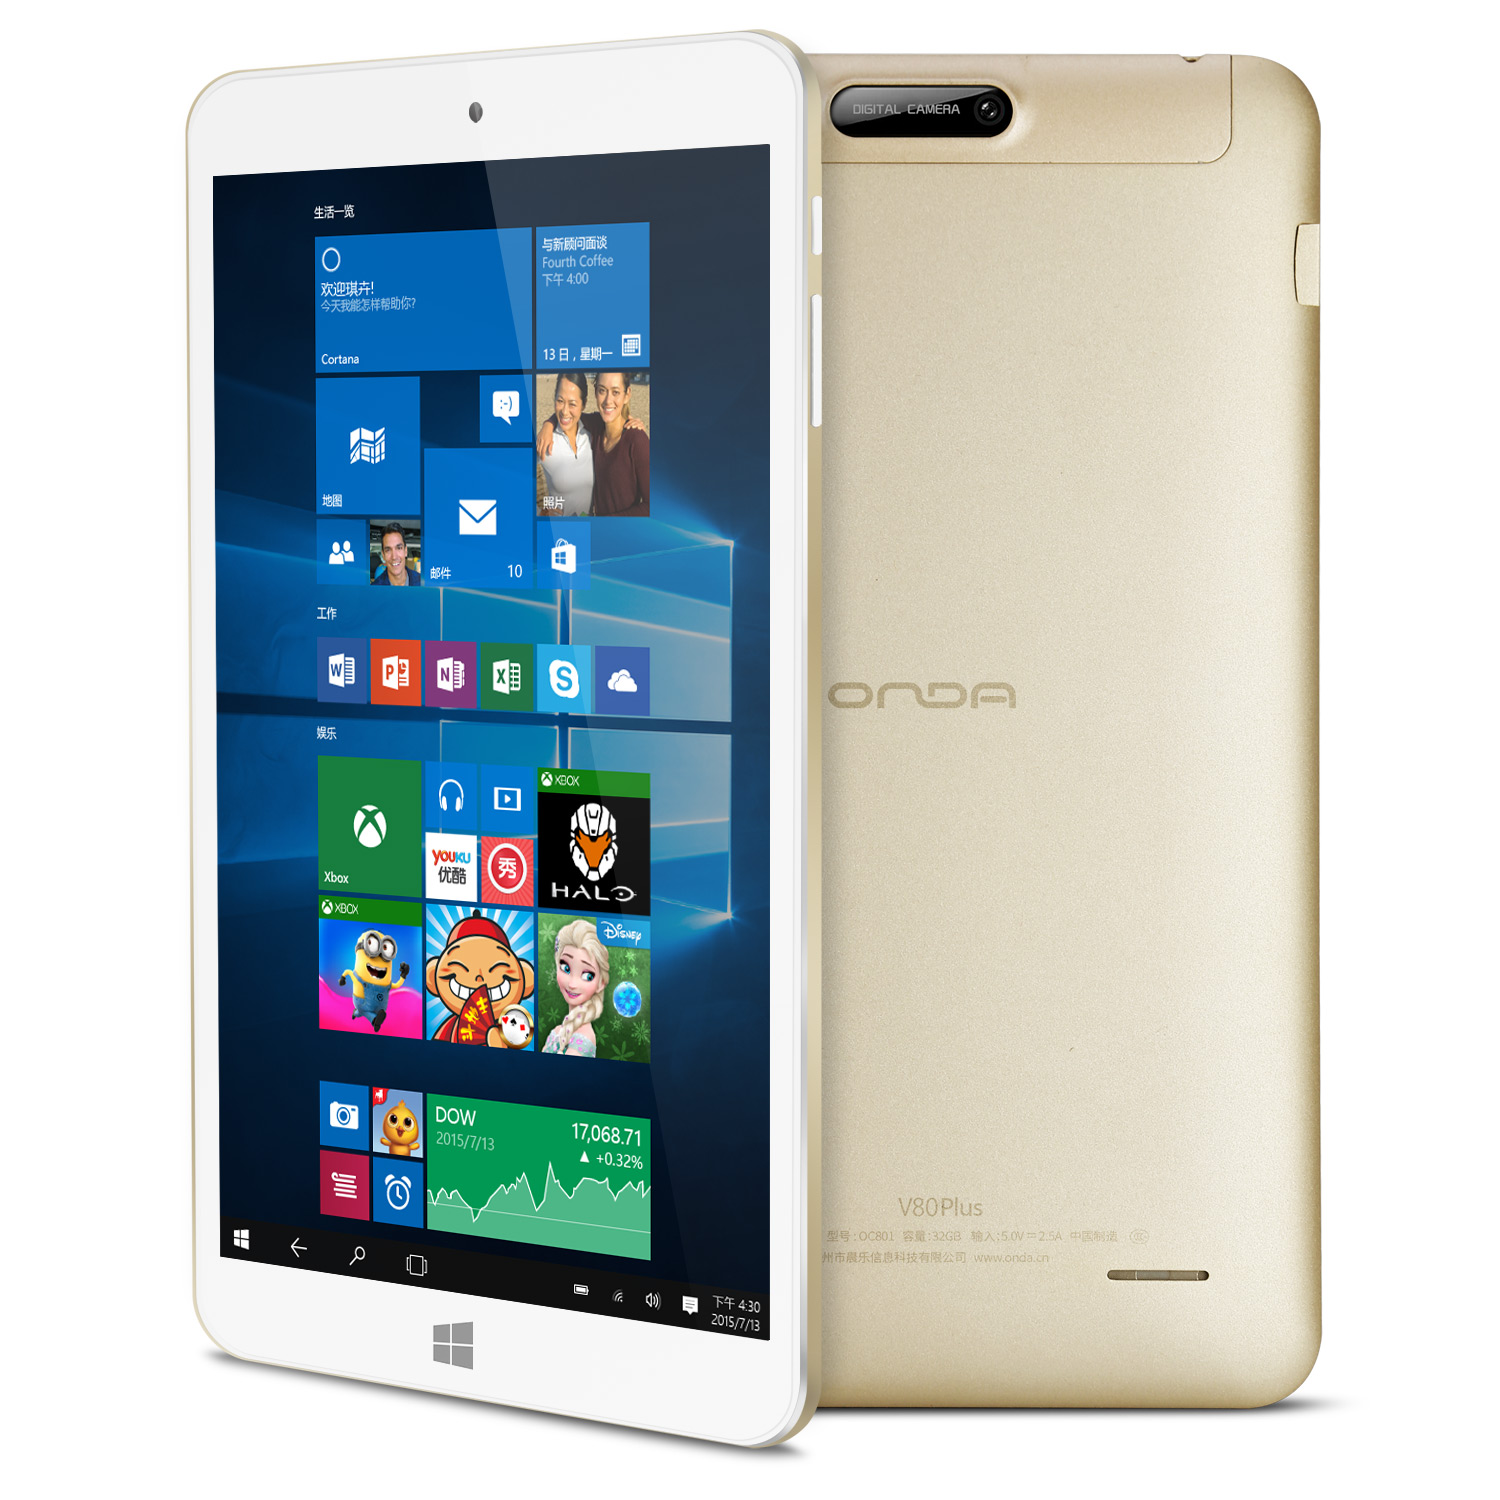 Black Friday Deals Here S 5 Amazing Tablets From China You Can Buy Today For A Great Price Tablet News